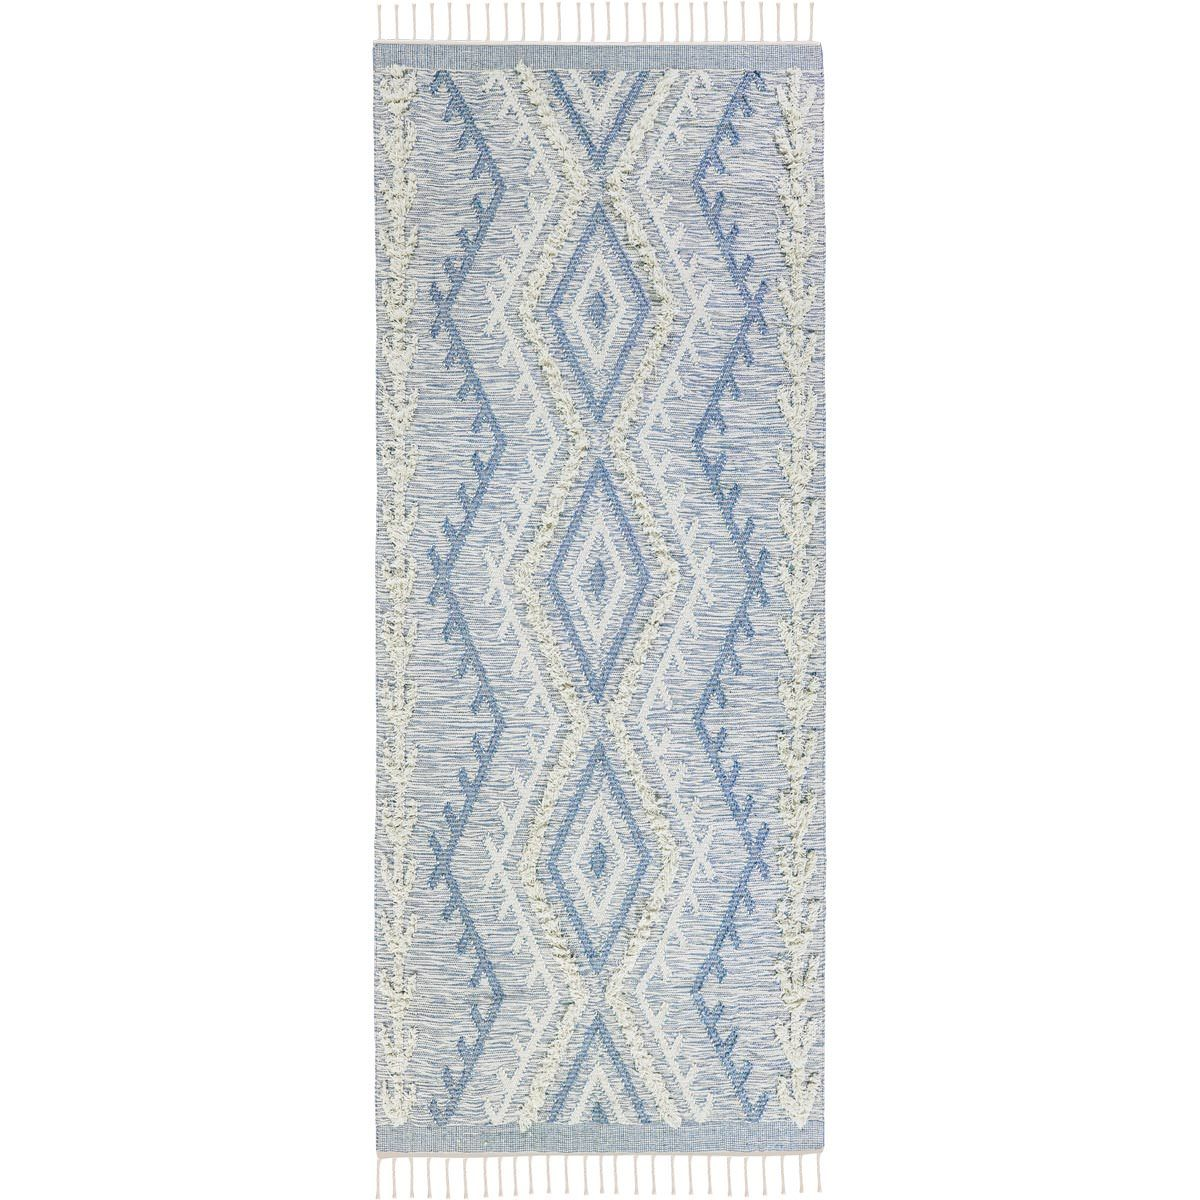 Tangier Rug 05 light blue Runner 1